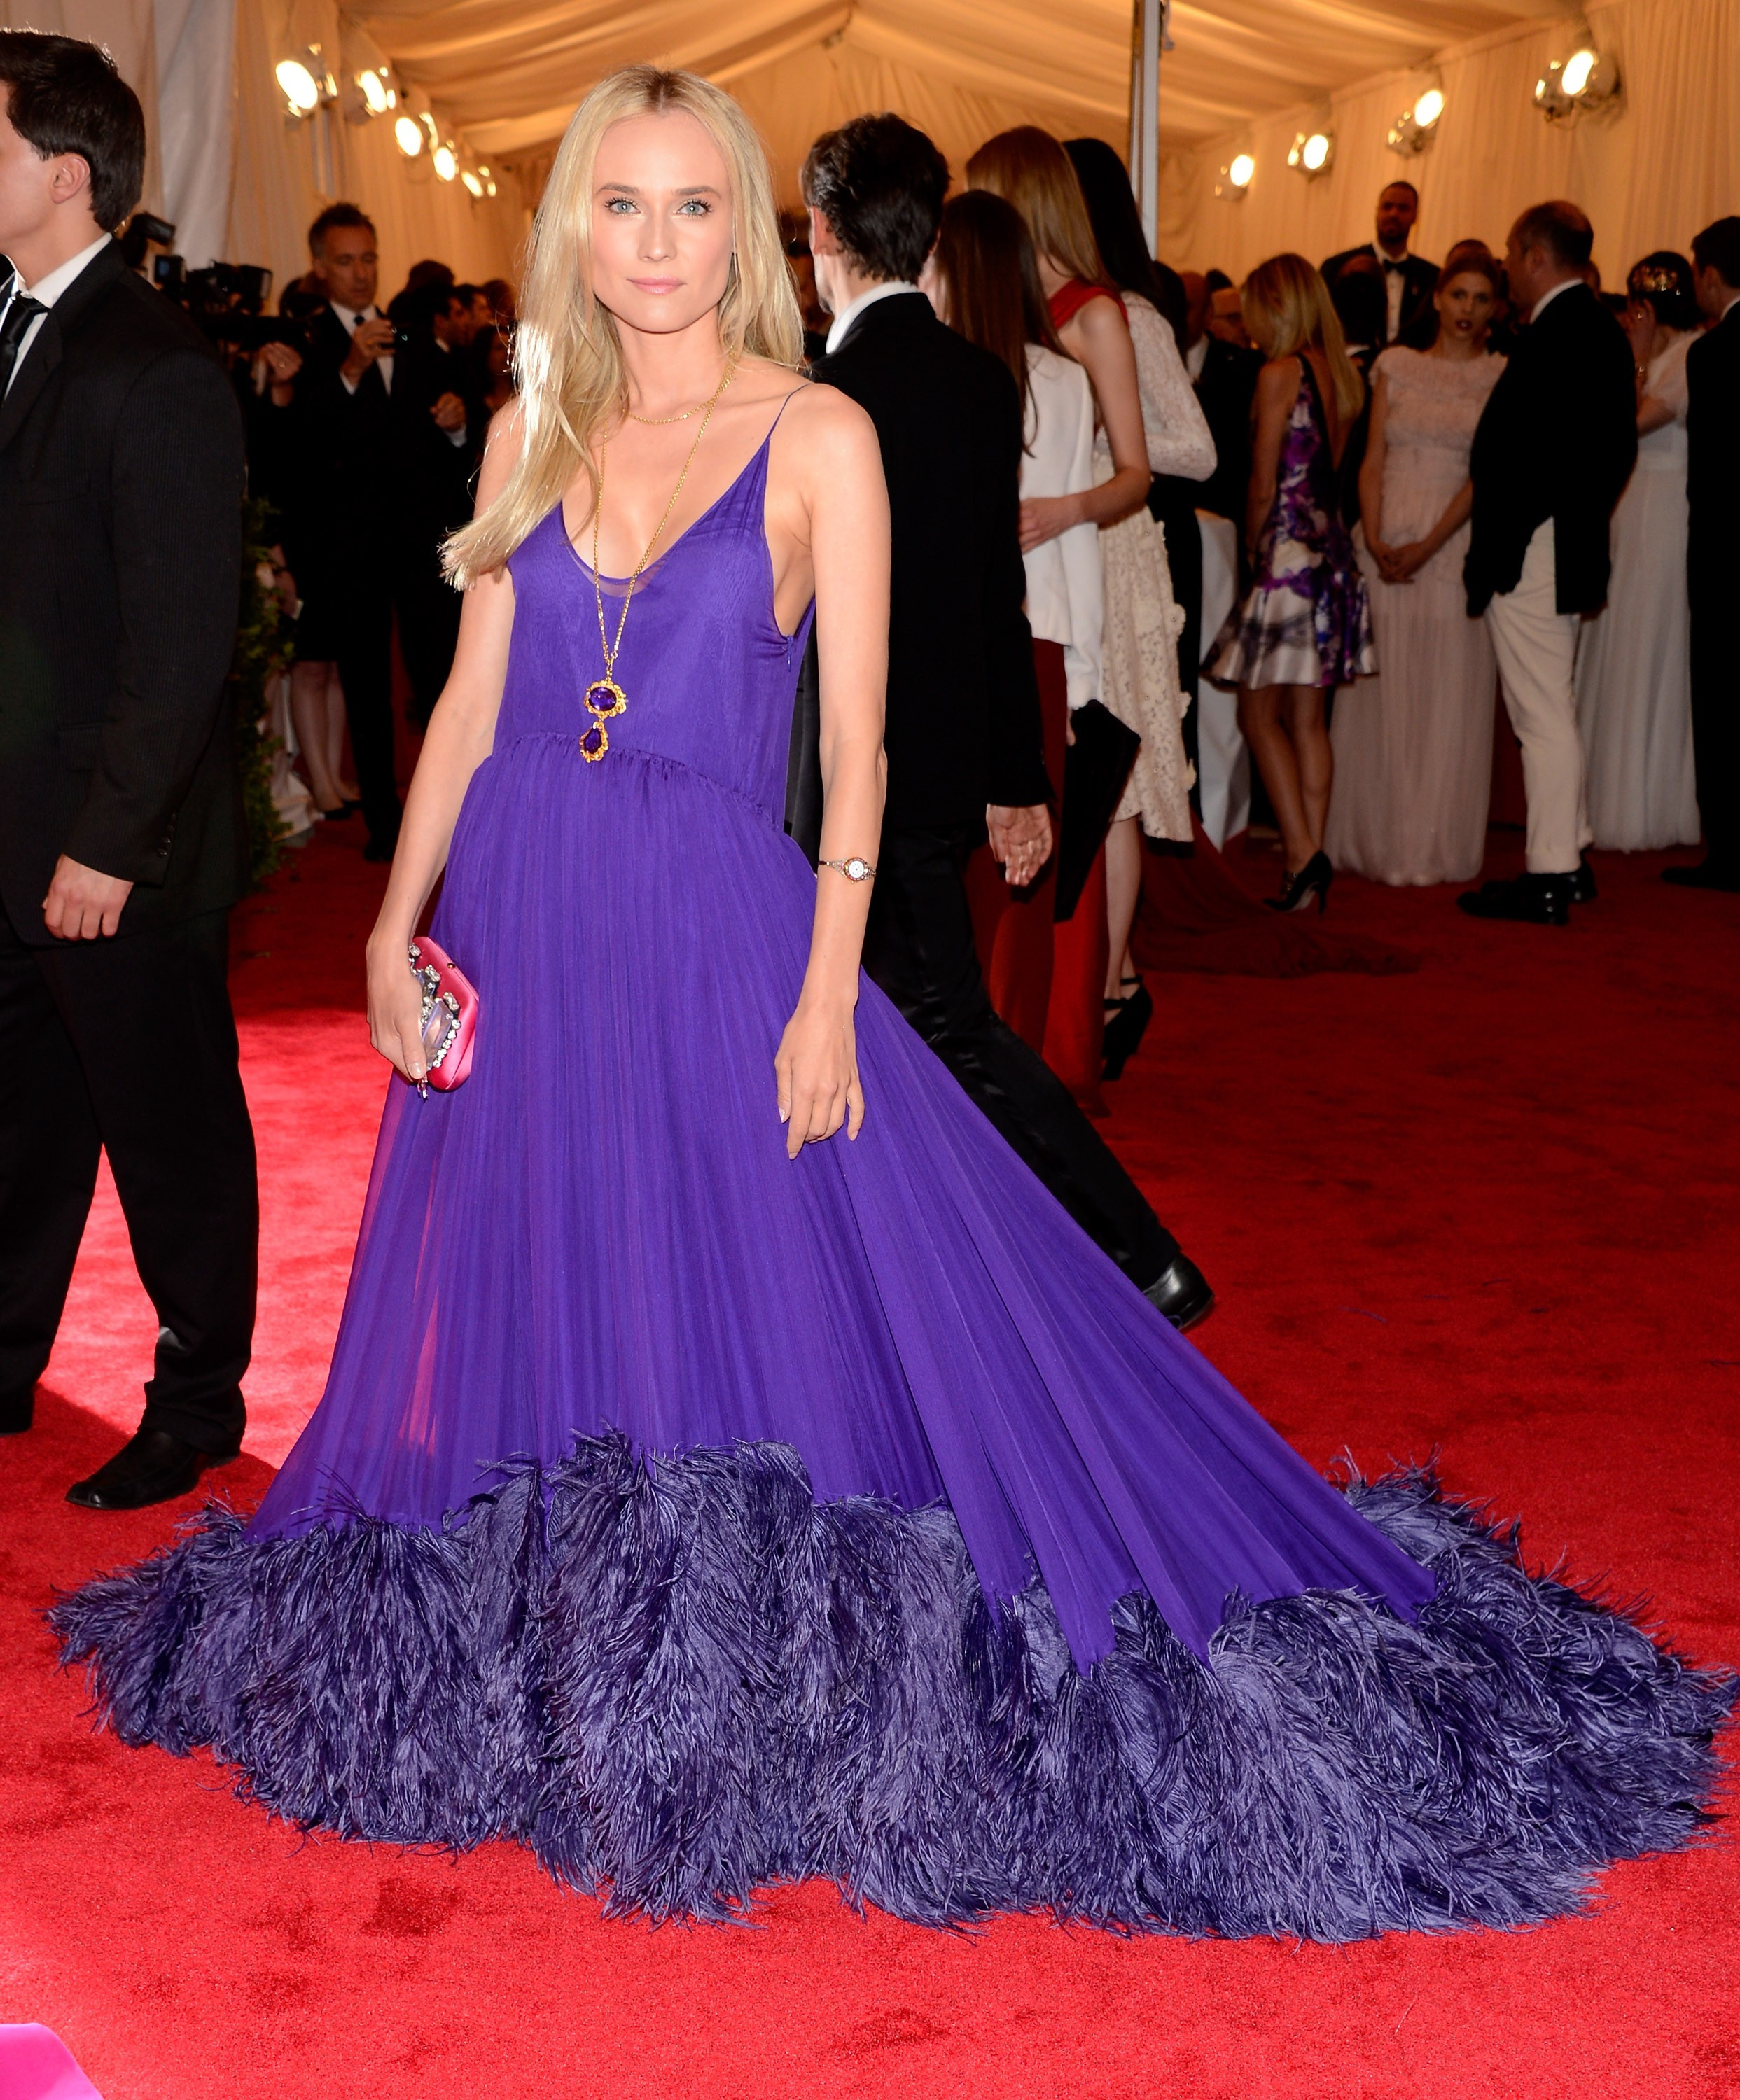 Diane Kruger Prada purple 2012 Met Gala Stephenie Meyers The Host